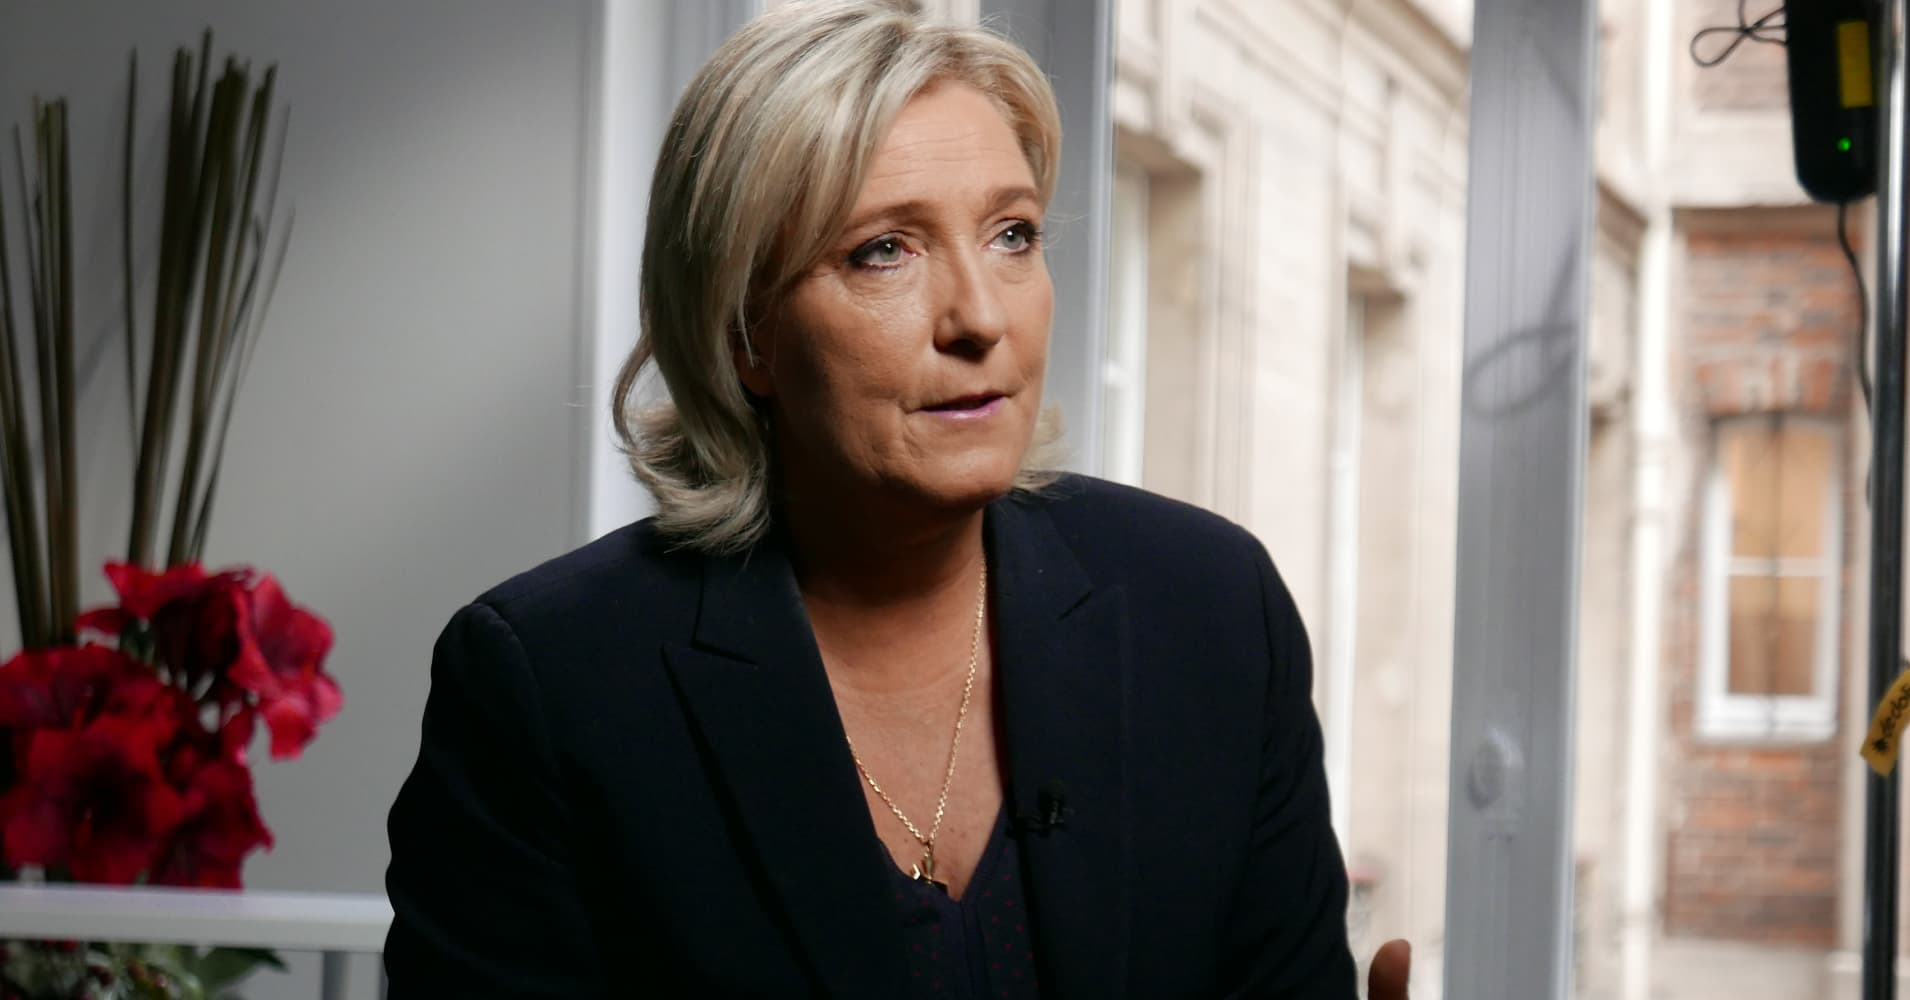 France's Le Pen says euro exit 'wouldn't be chaos'